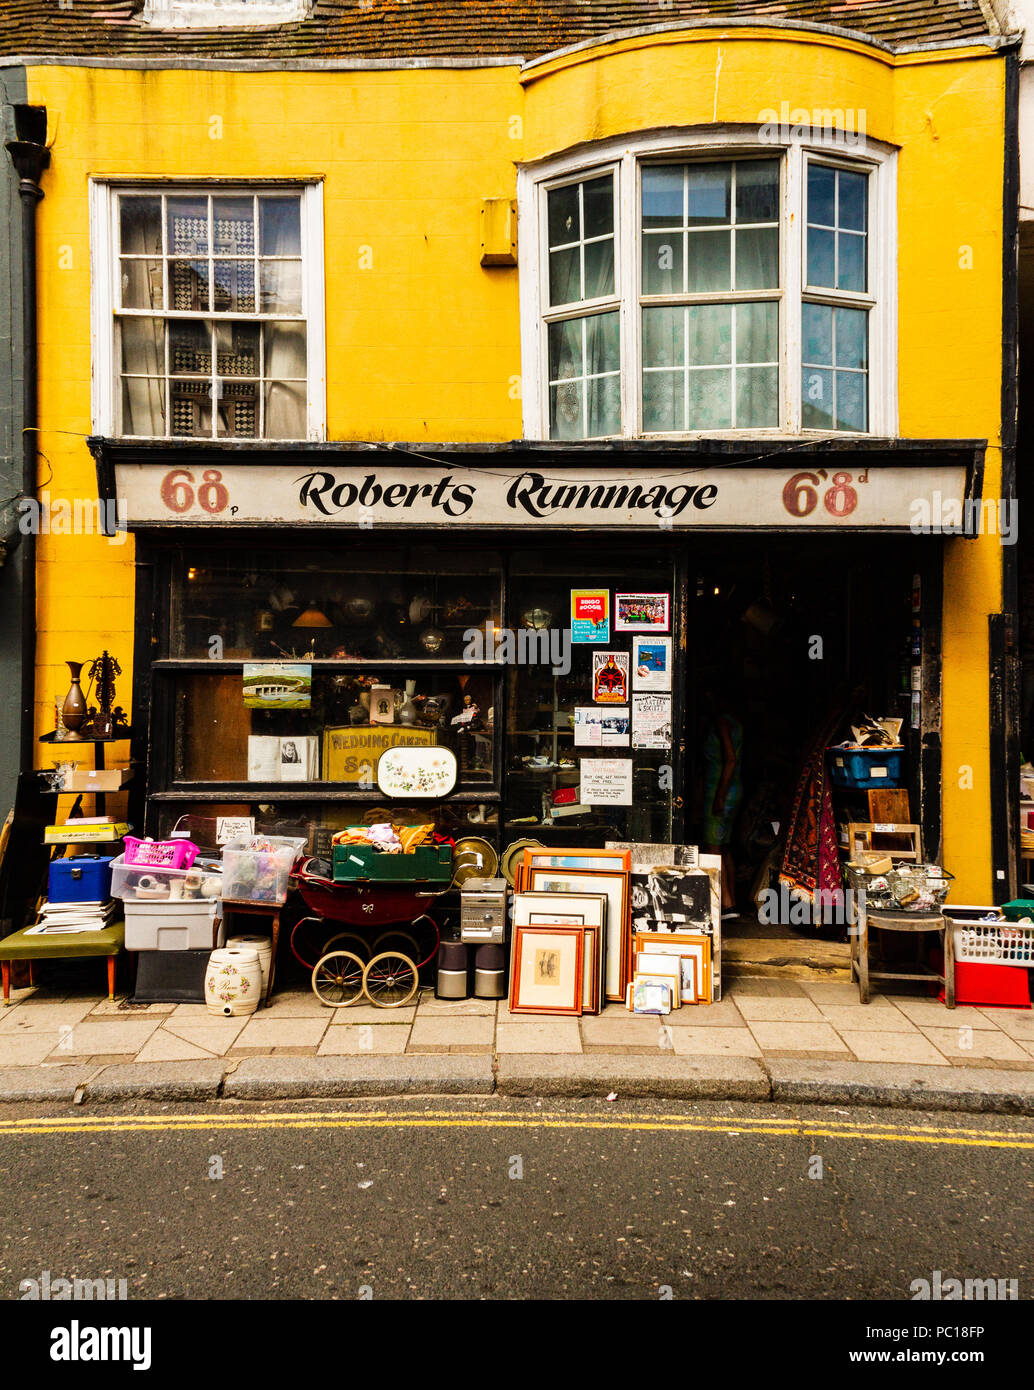 Shop in the old town part of Hastings UK - Stock Image